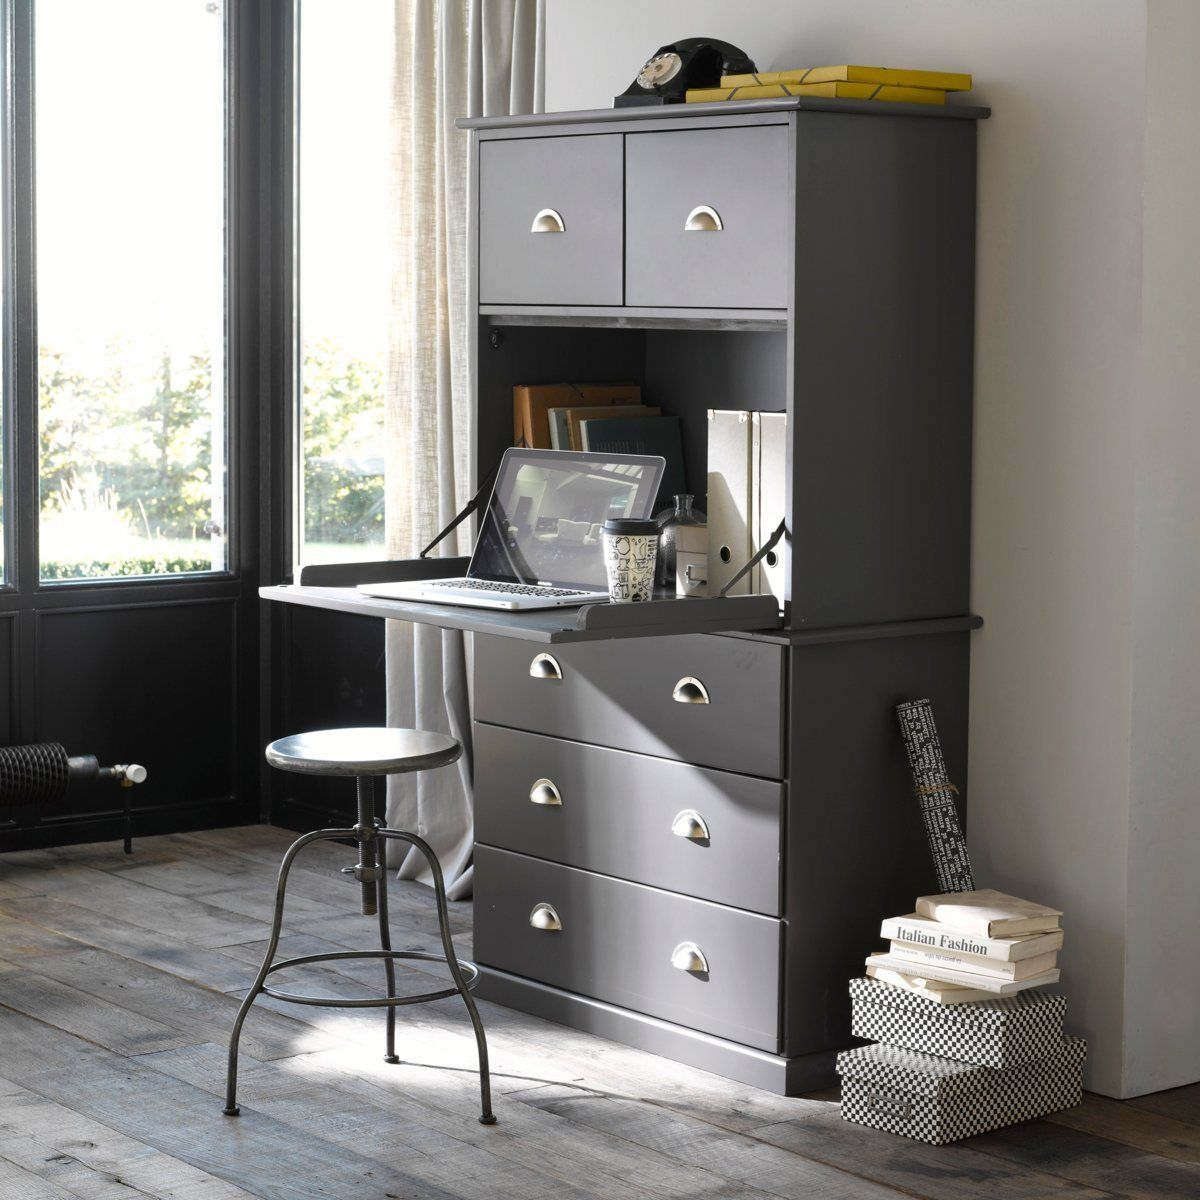 secr taire biblioth que pin massif betta la redoute interieurs prix promo bureau la redoute 385. Black Bedroom Furniture Sets. Home Design Ideas